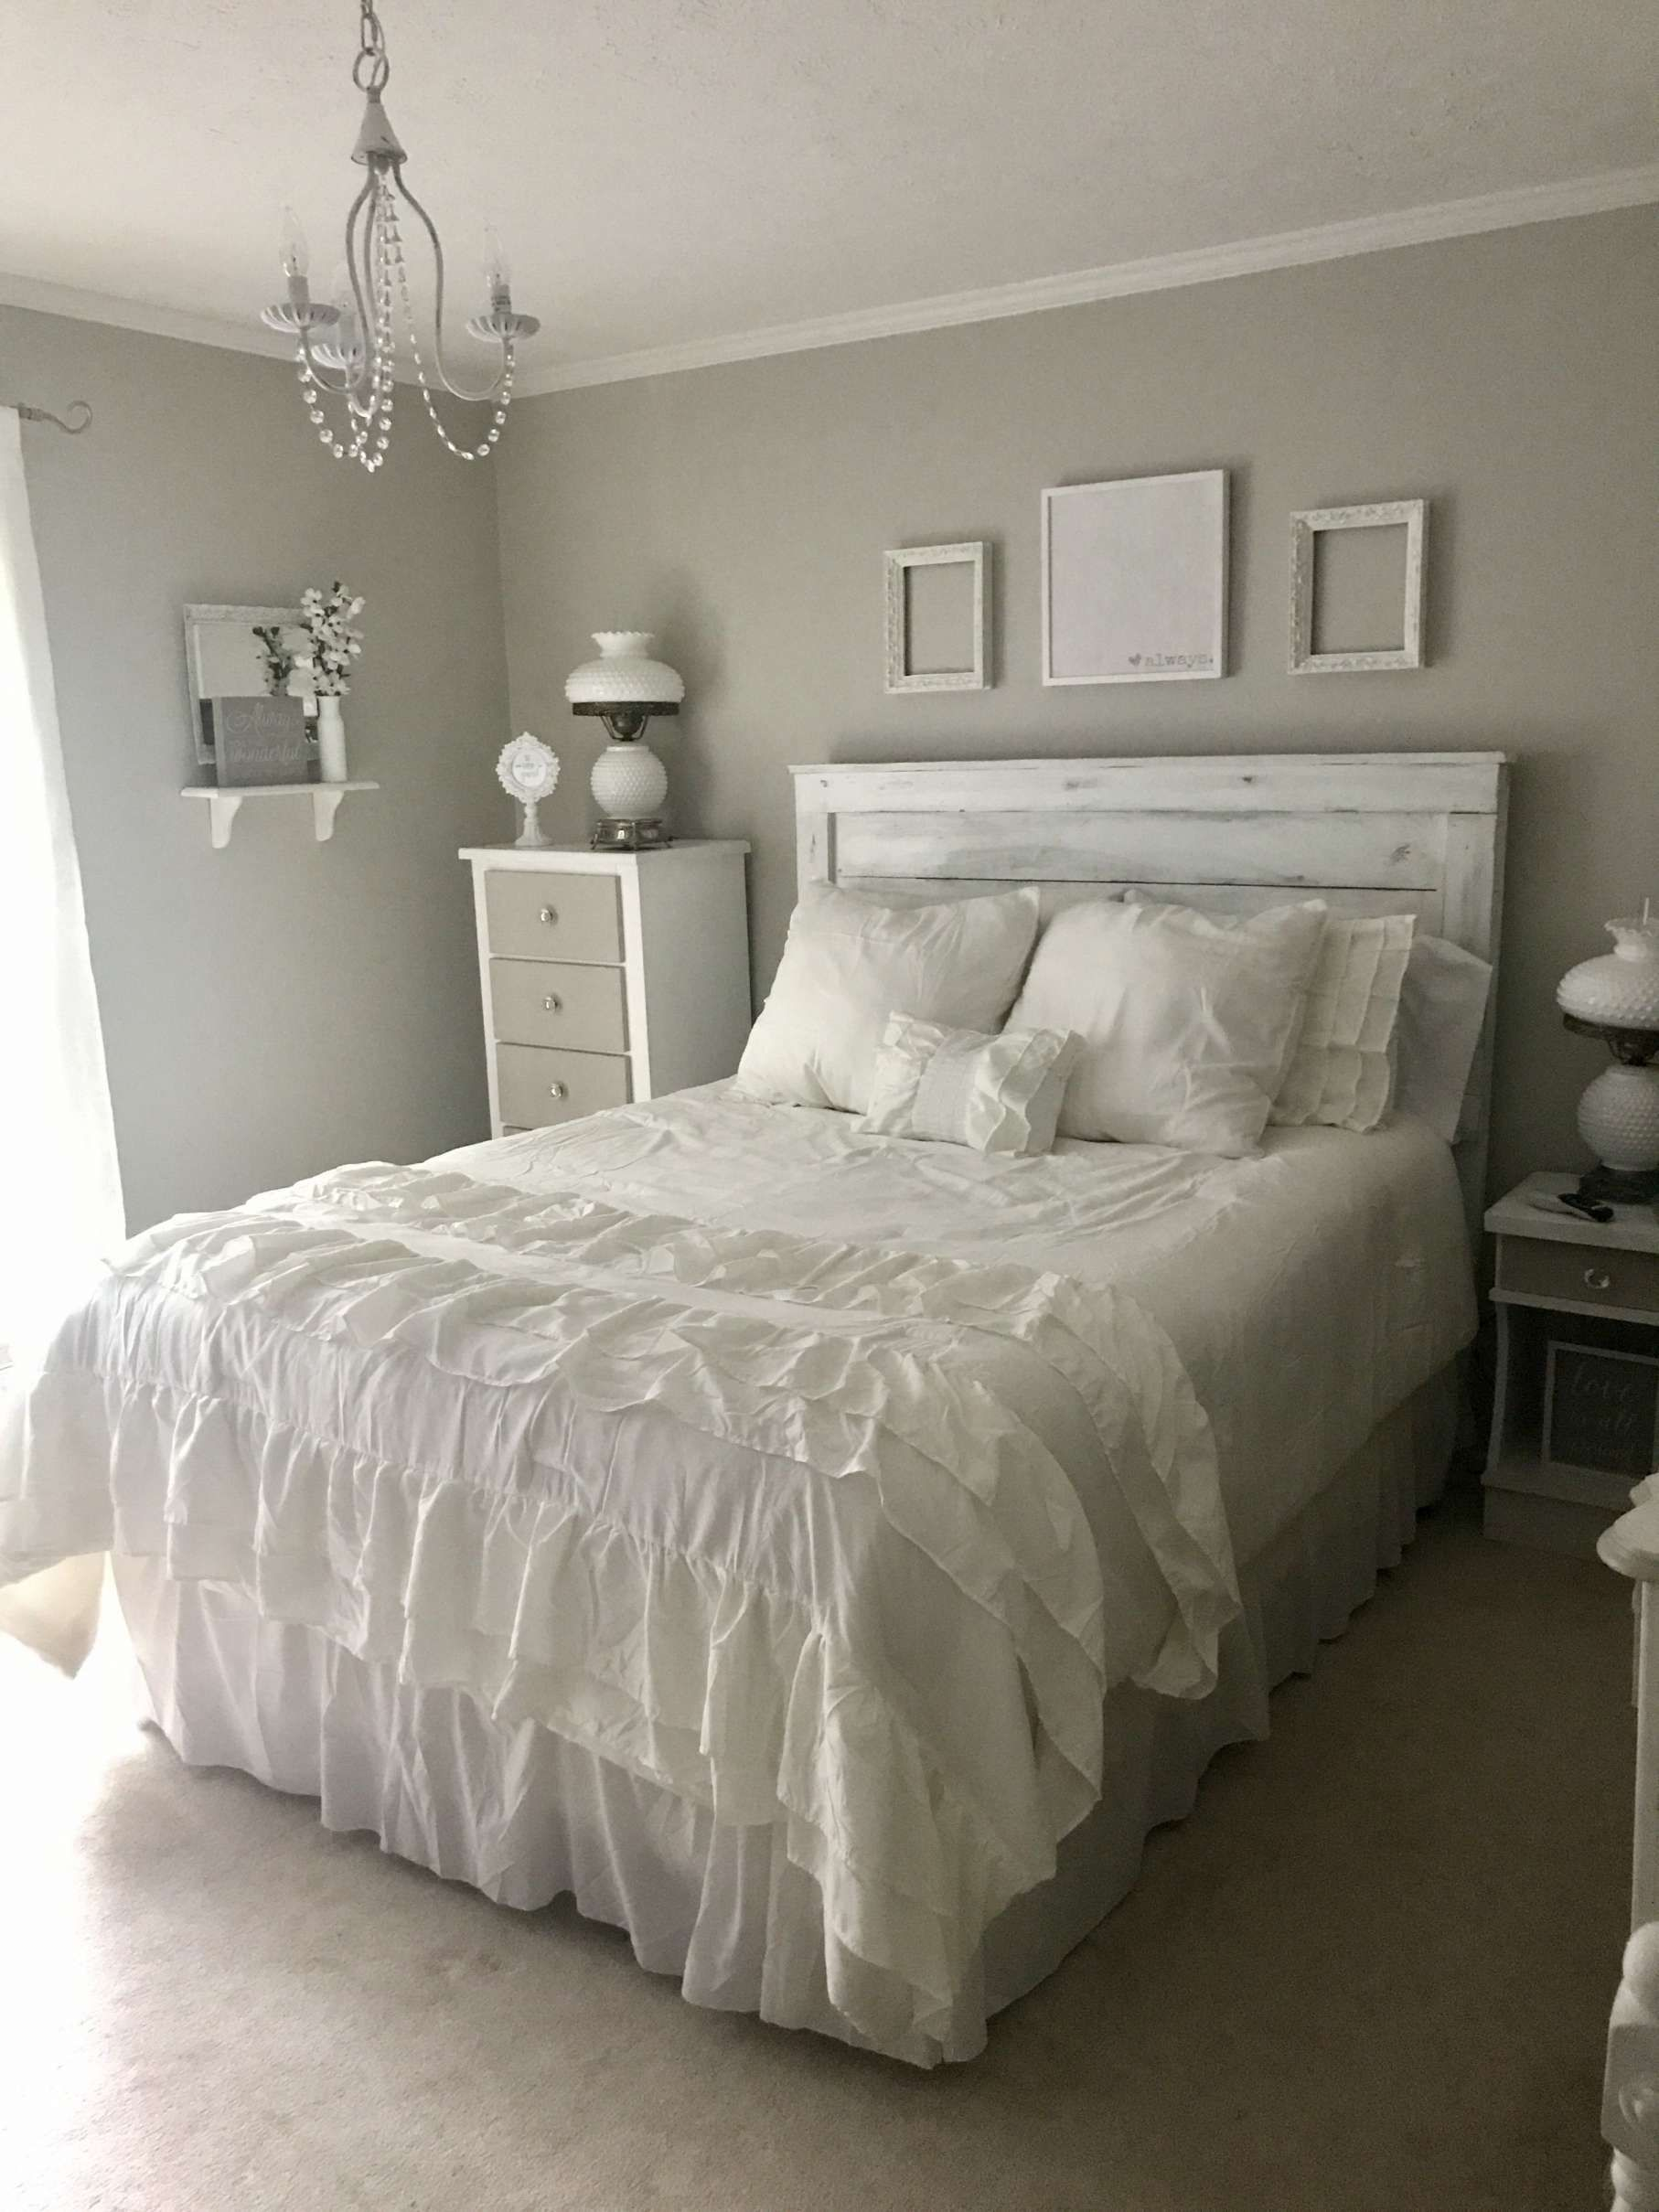 shabbychic 5 Fantastic Grey And White Shabby Chic Bedroom Gallery